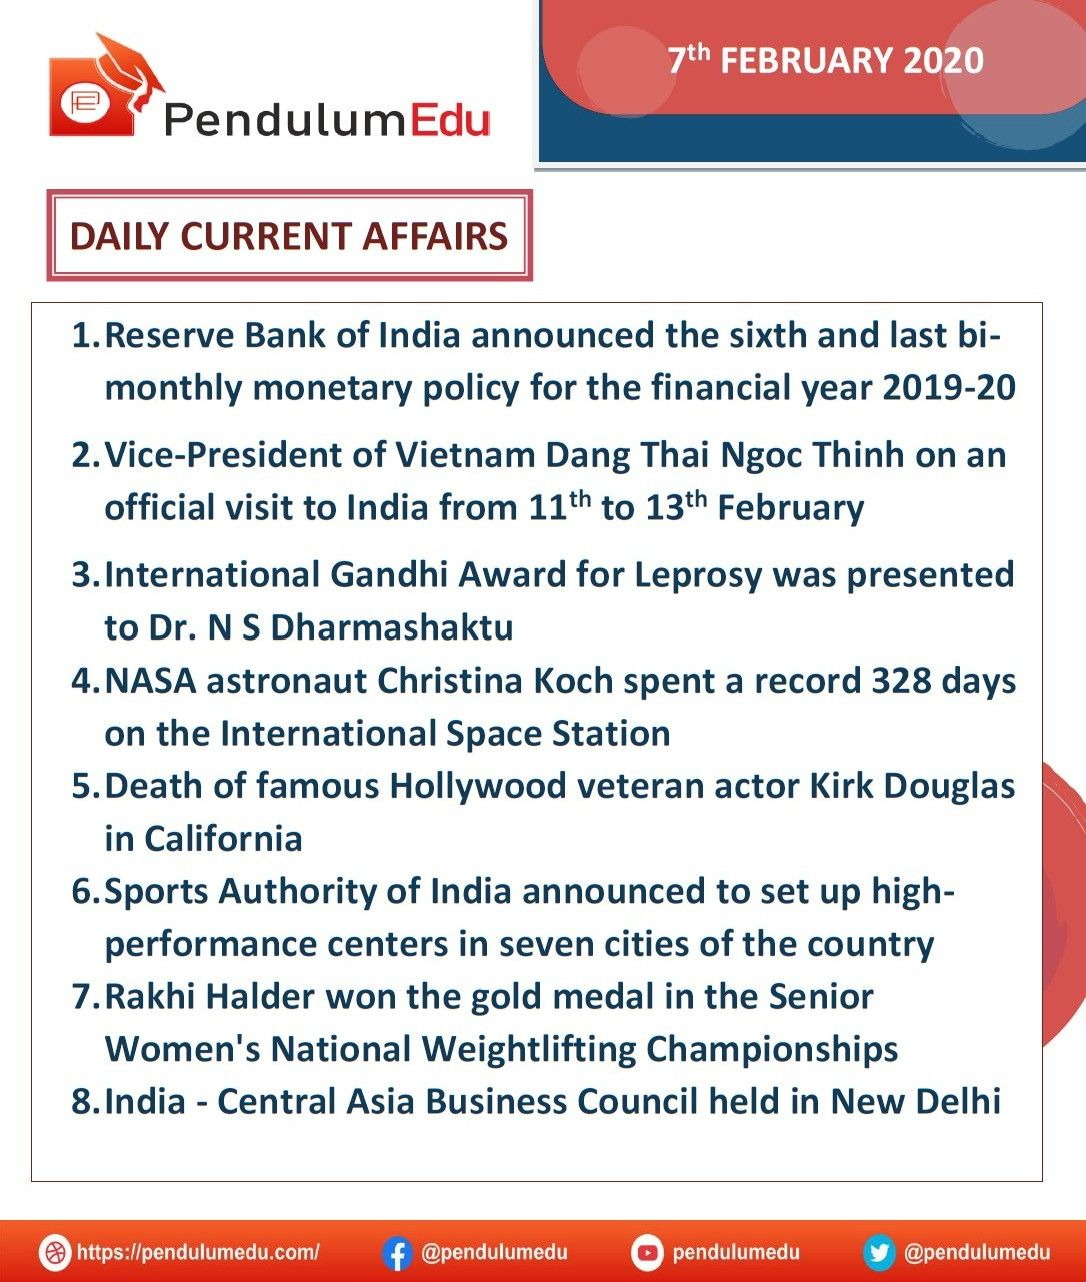 DAILY CURRENT AFFAIRS 7TH FEB 2020 in 2020 Current